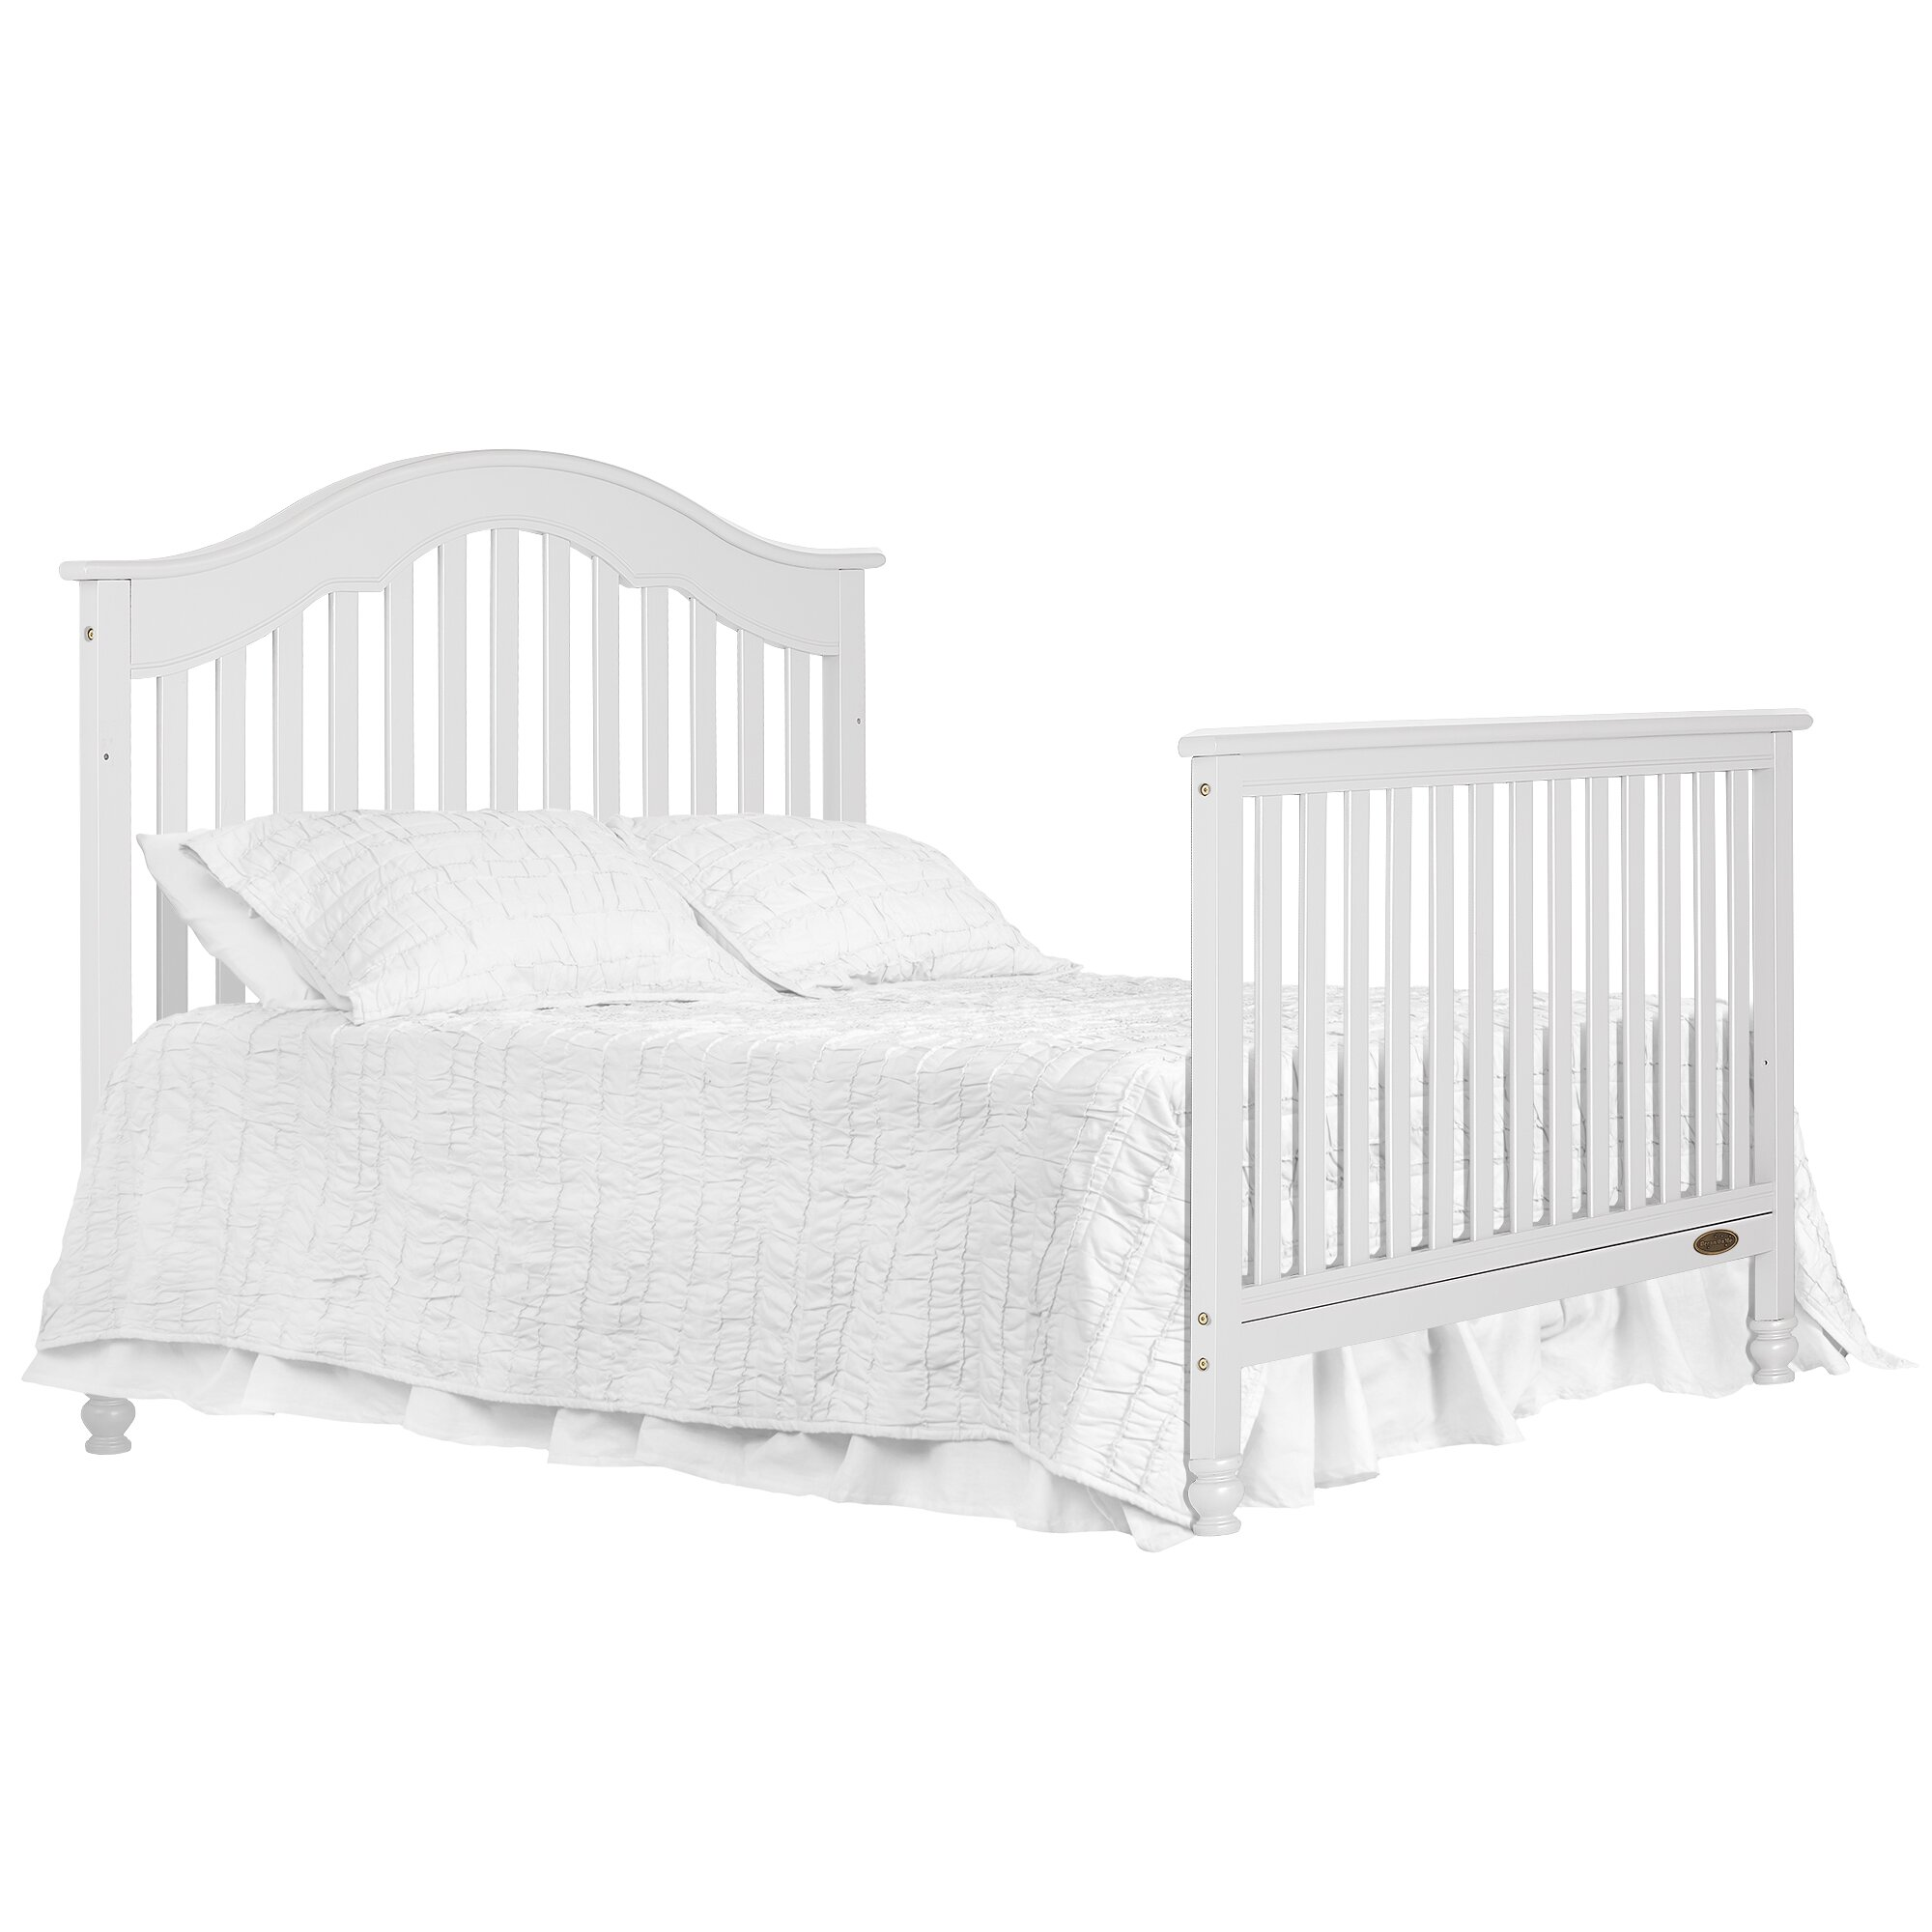 Used crib for sale edmonton - Dream On Me Charlotte 5 In 1 Convertible Crib